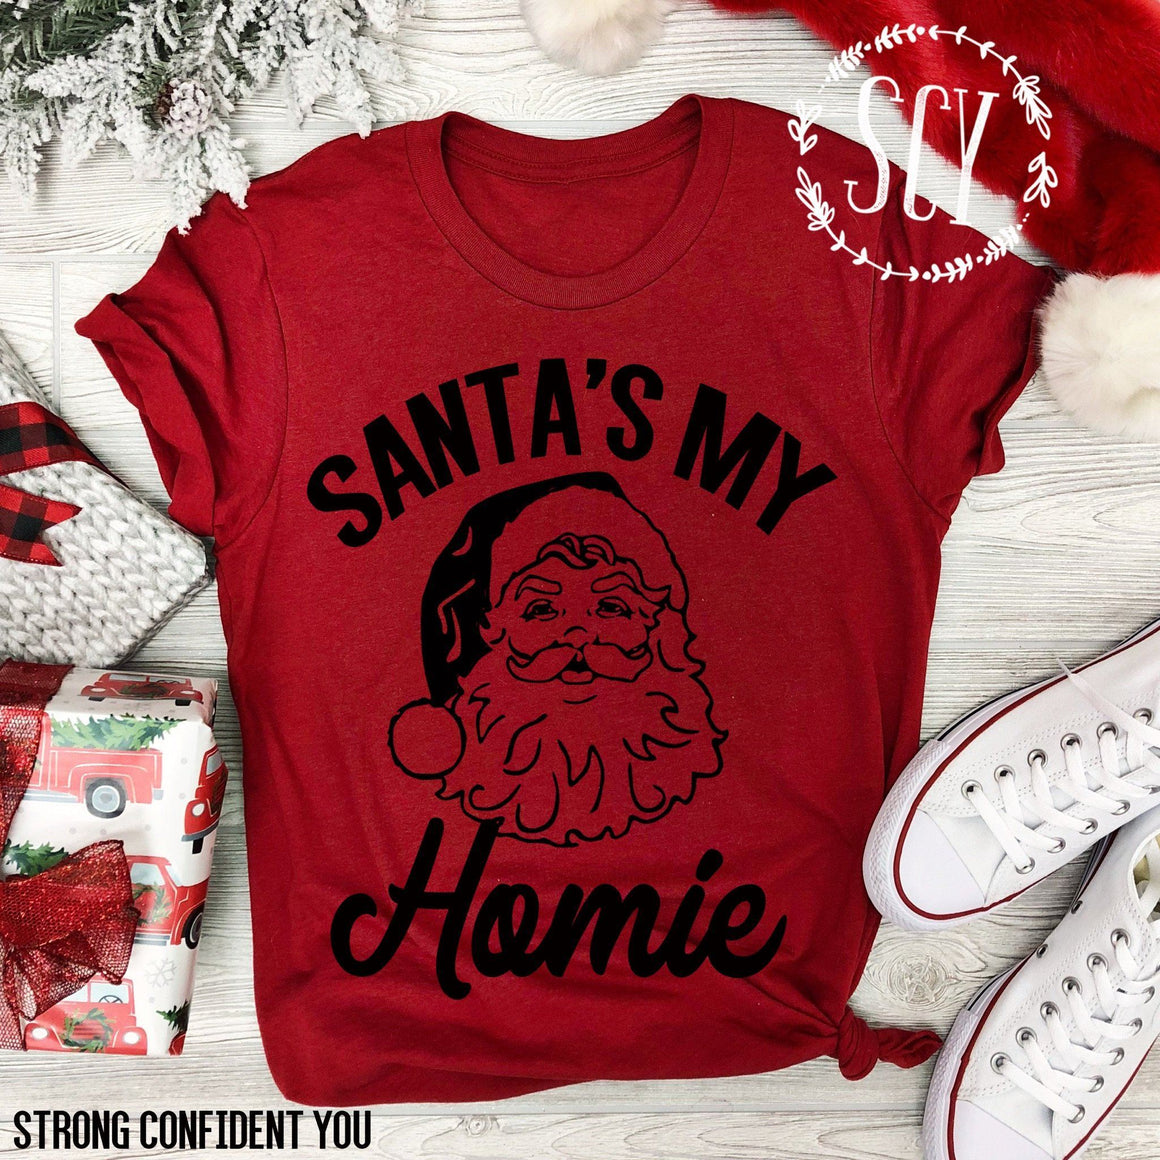 Santa's My Homie - Strong Confident You